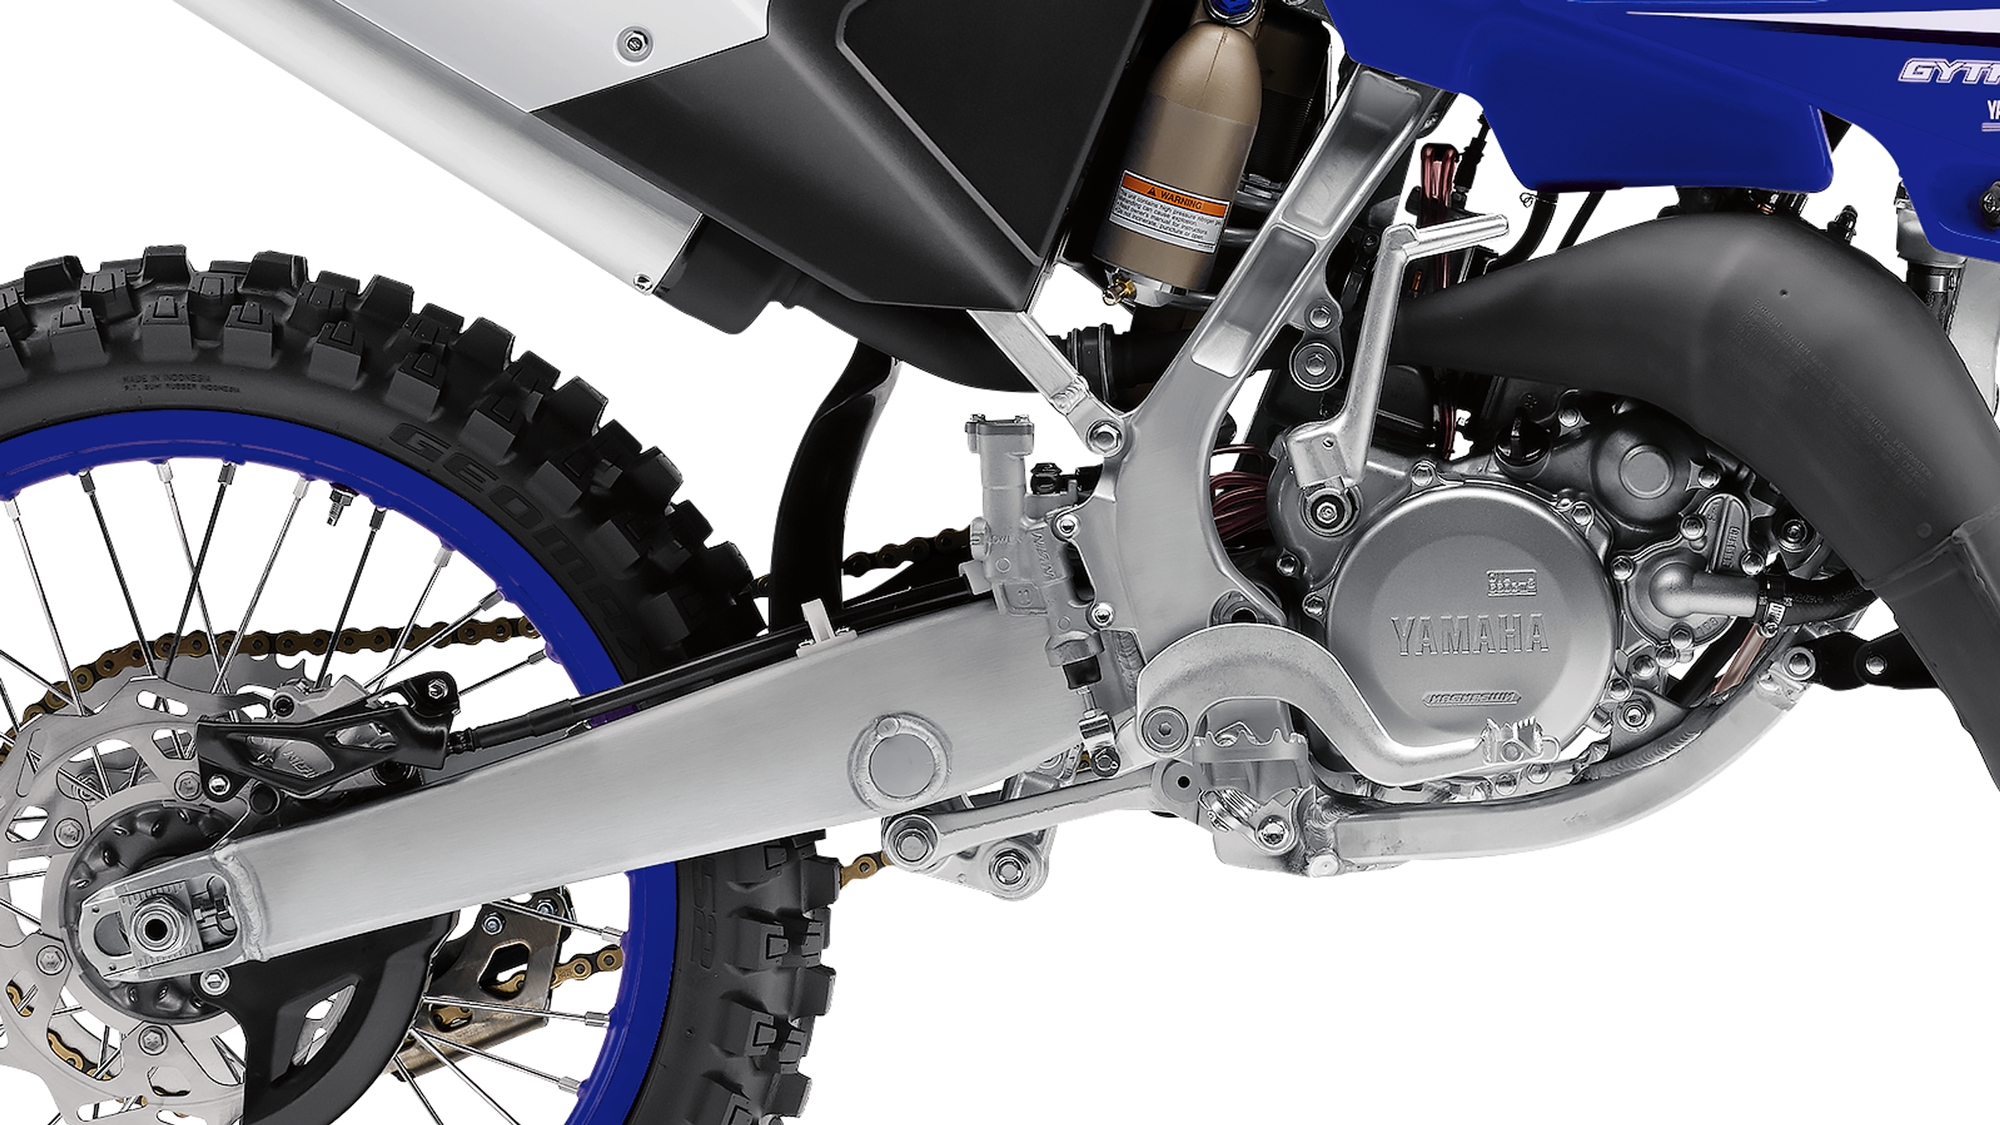 Yamaha YZ125 2018 - Features and Technical Specifications